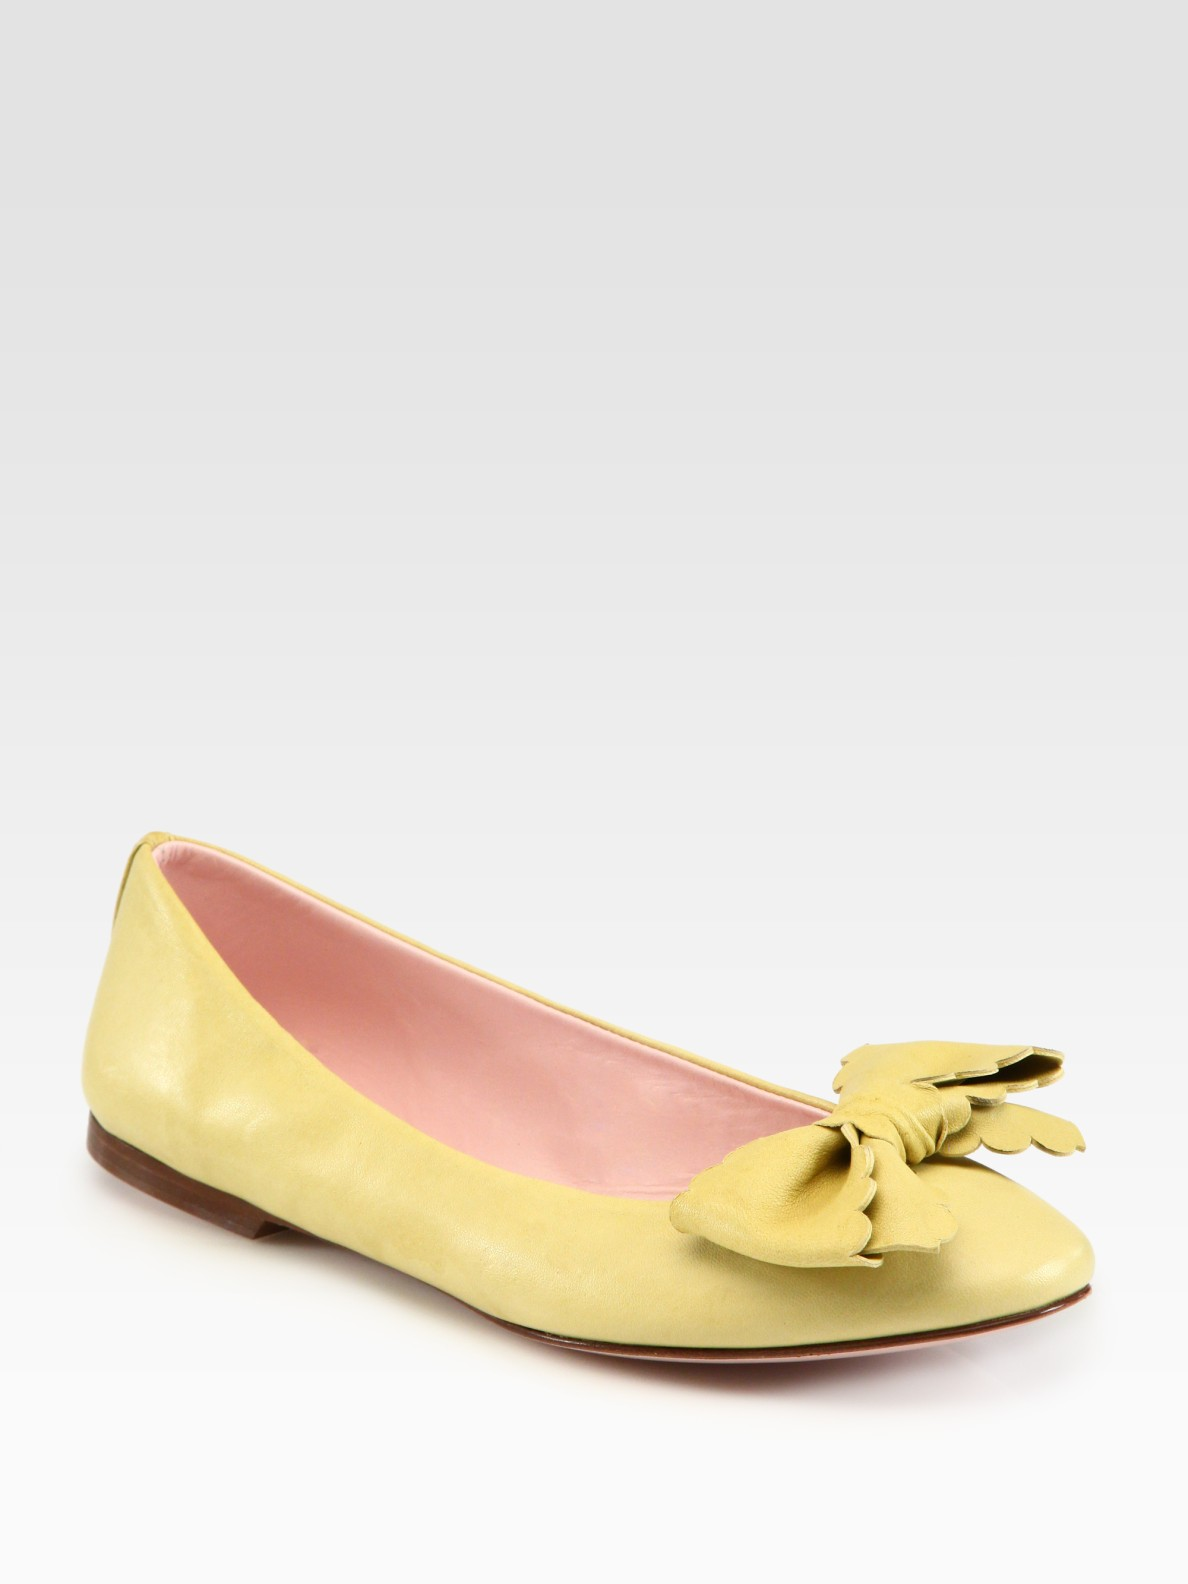 Red Valentino Leather Bow Ballet Flats in Yellow (lime) | Lyst